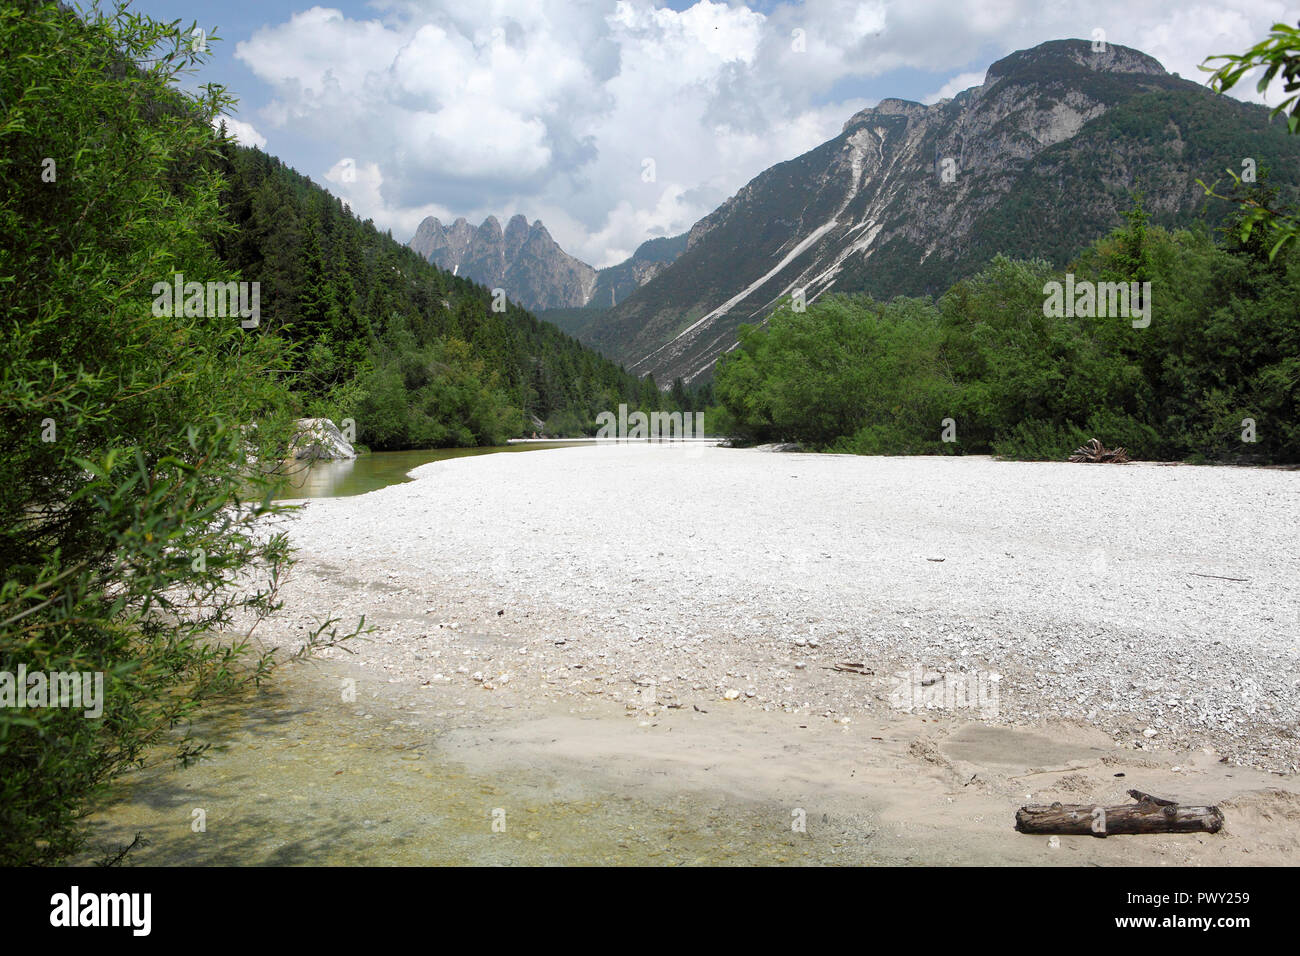 Bovec, Slowenien. 30th May, 2018. 30.05.2018, Slovenia, Bovec: View of the Lago del Predil, near the border Italy/Slovenia. Location is the Strada Provinciale 76, approximately at 46 ° 25'07.4 'N 13 ° 33'34.1' E Credit: Daniel Gammert/dpa-Zentralbild/ZB | usage worldwide/dpa/Alamy Live News - Stock Image